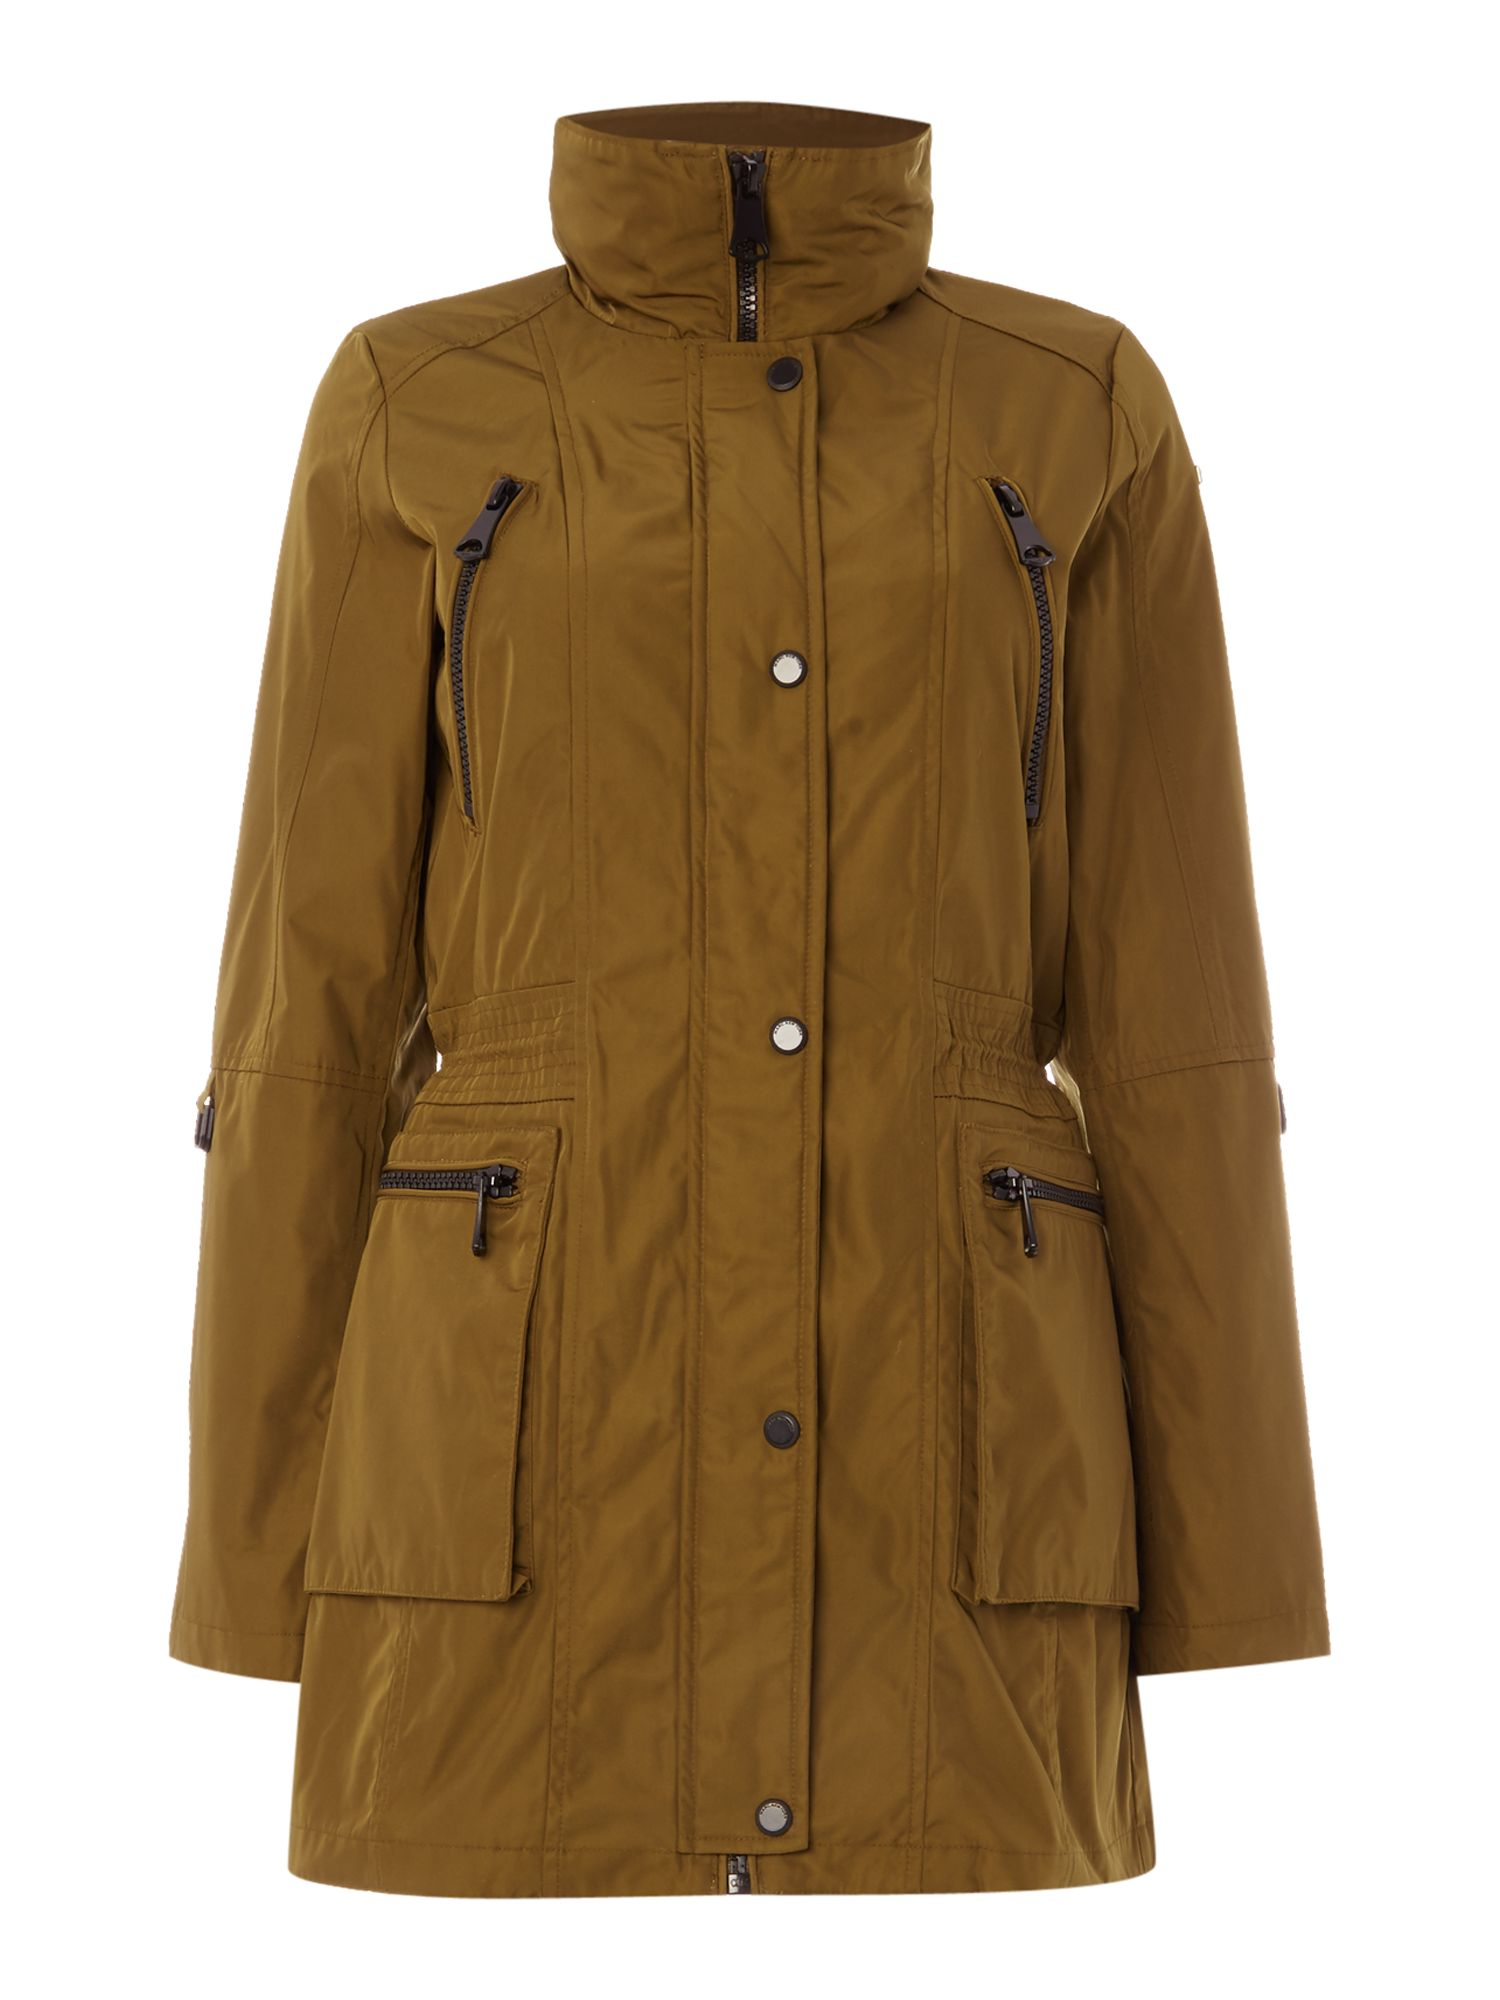 Andrew Marc VERONICA parka coat with hood Green